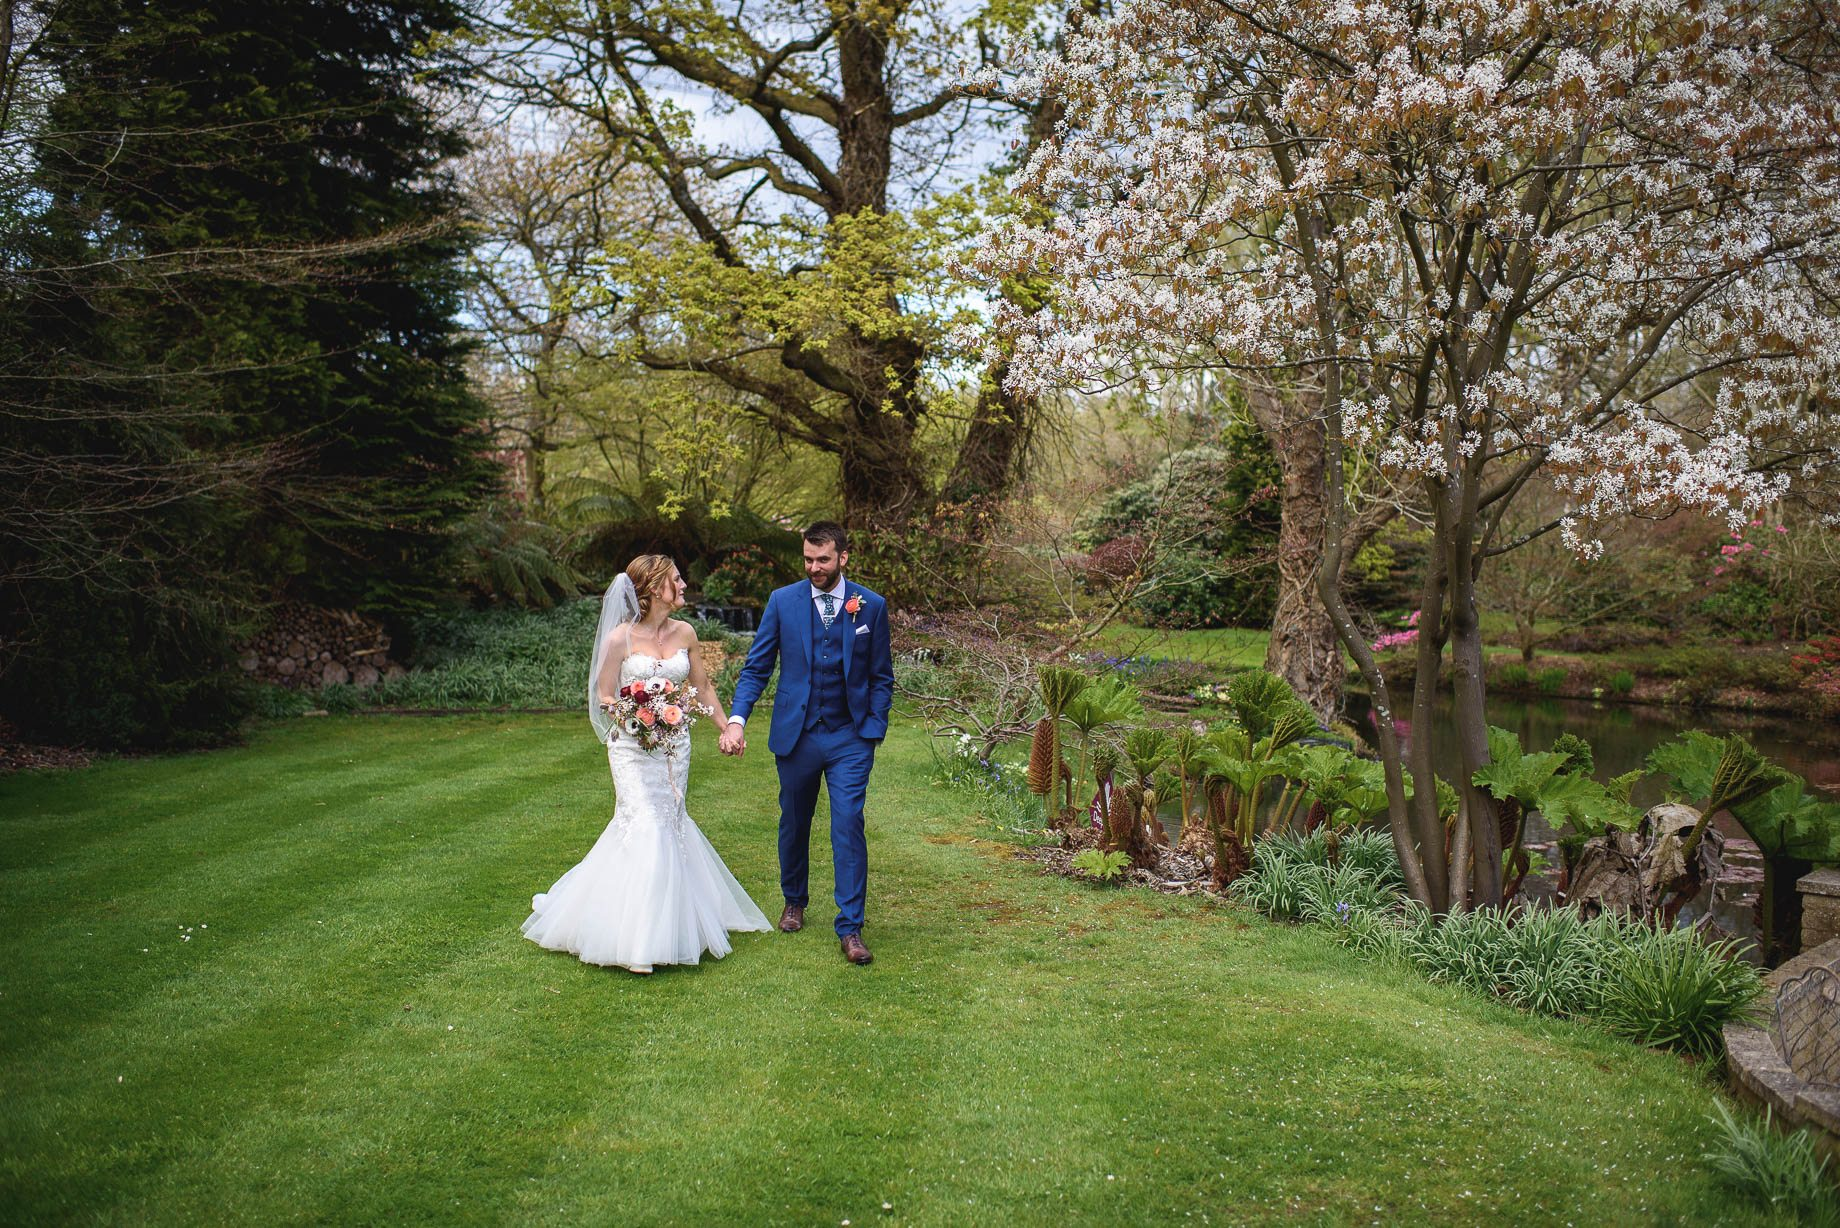 Rivervale Barn wedding photography by Guy Collier - Claire and Simon (83 of 133)